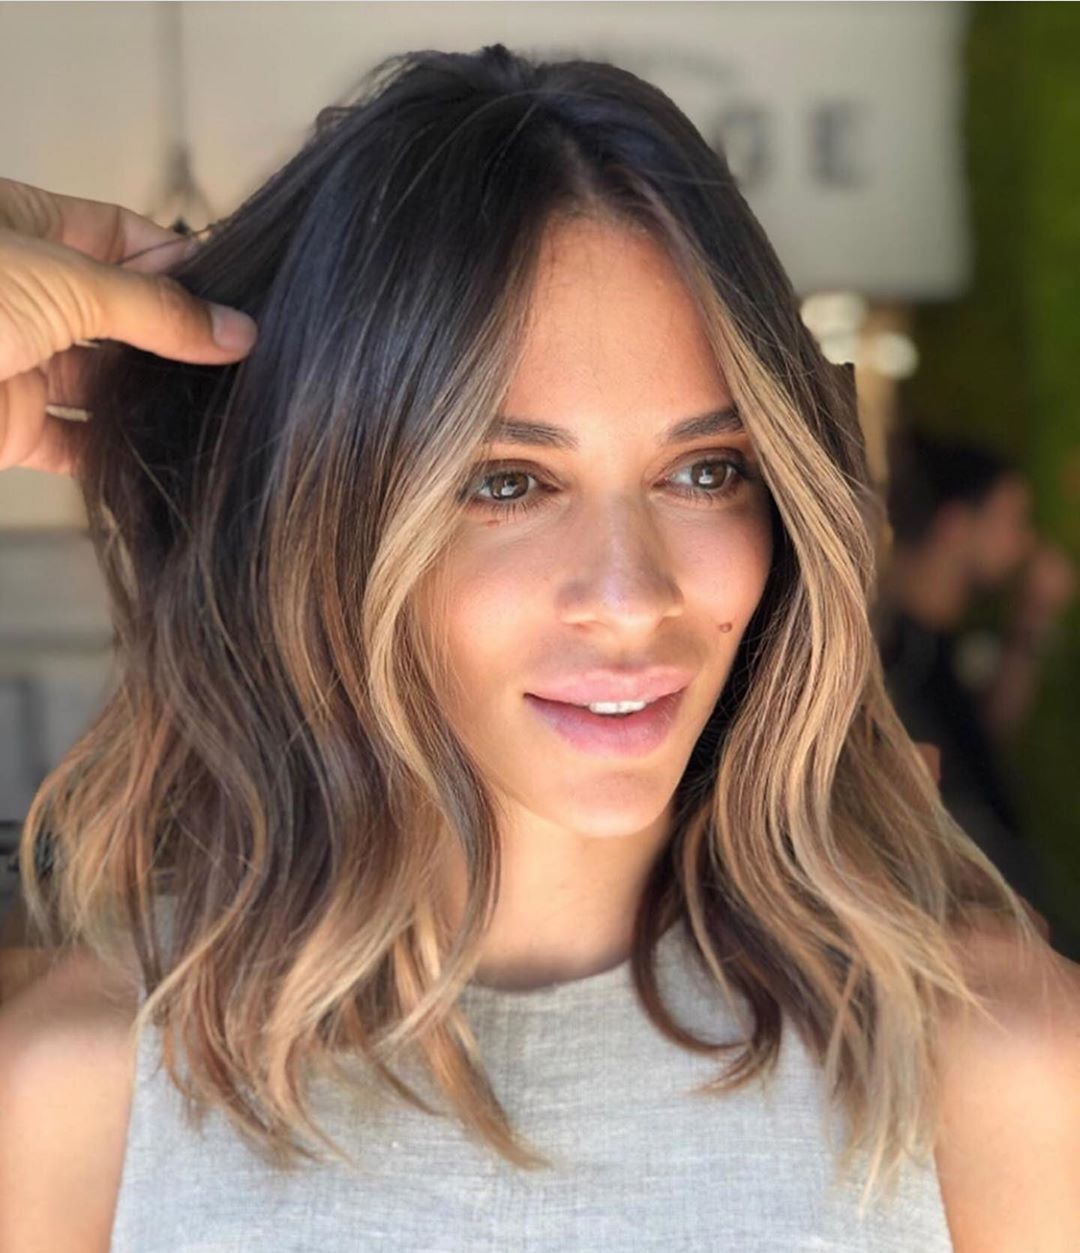 Enissablog on Instagram: Whats your favorite#long or short hair#blonde or dark#1to the#haircolor #hairstyles #haircut #hairart #balayage #ombre#facelight